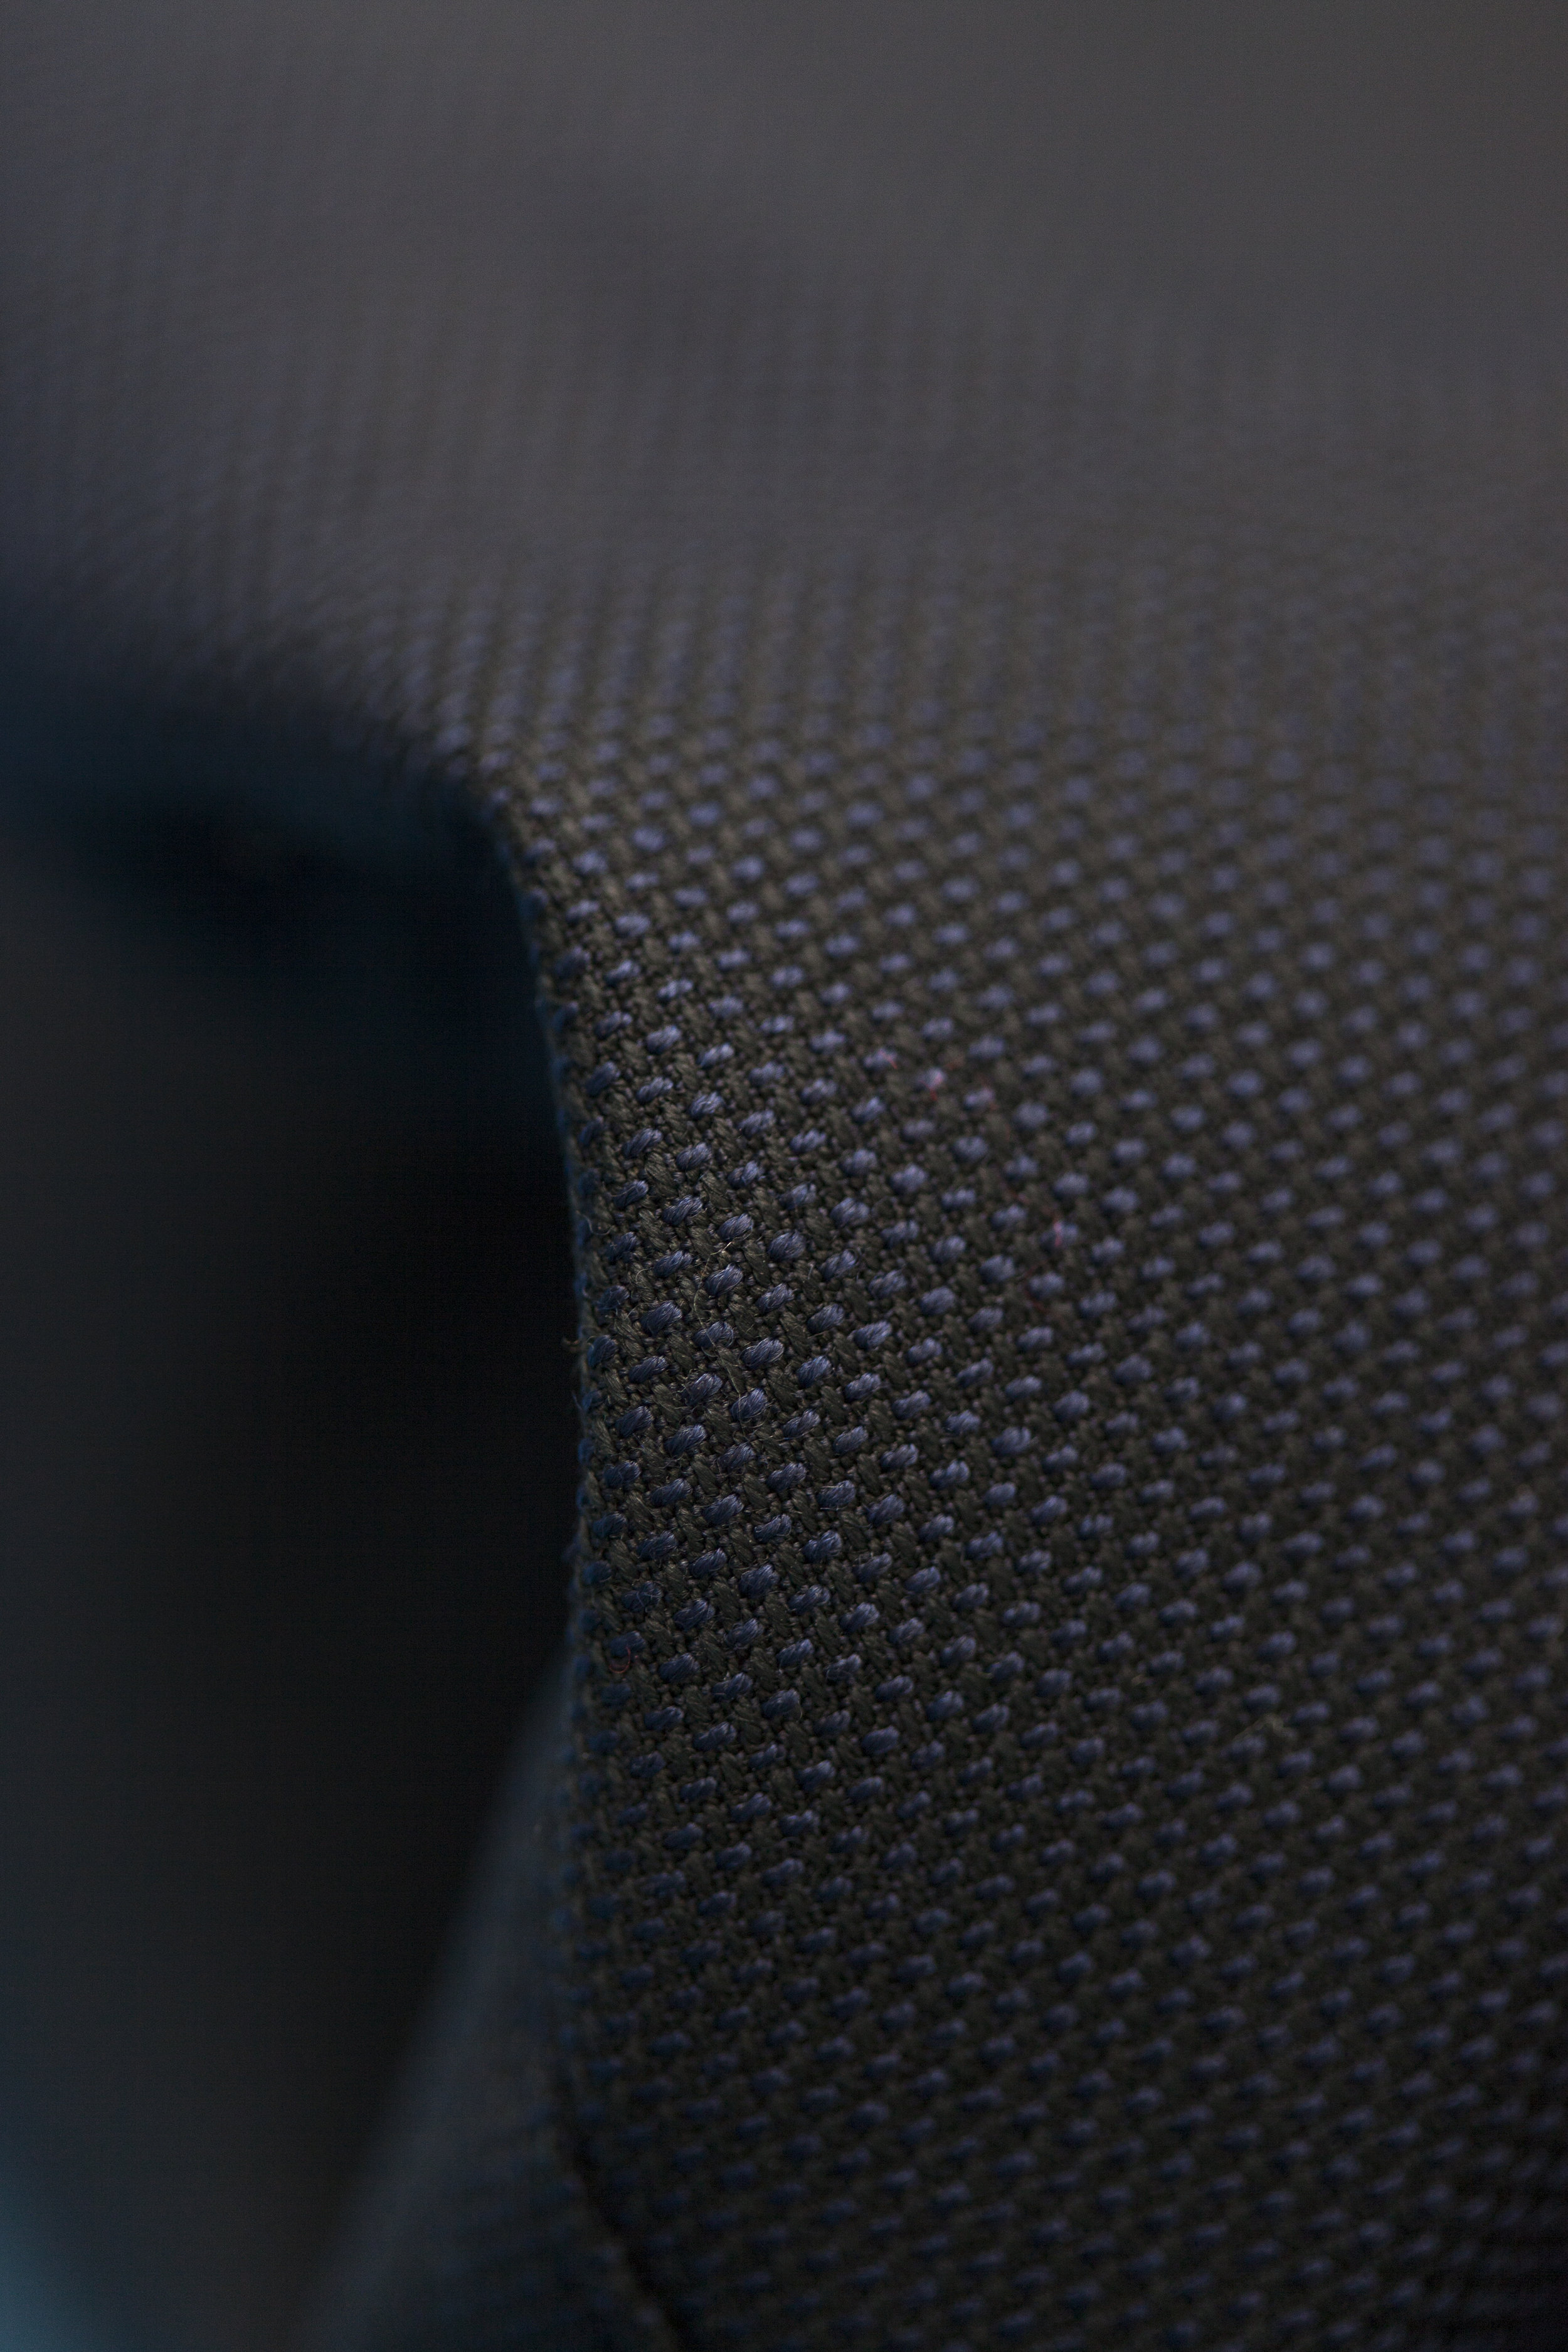 Super100 wool fabric with a technical membrane on the backside called warmsense. Warmsense reacts to UV rays and warms up the fabric (up to 3°C) in cold sunny days. The fabricis also breathable and water resistant. The wool from the fabric supplier Reda is ZQ certified, and is pure Merino wool from sheep reared on their own farms in New Zealand. It relies on a vertically integrated process totally controlled and guided by the principle of sustainability in a system of eco-management. It is also the only wool mill in the world that holds the EMAS (Eco Management and Audit Scheme) environmental certification. This is a European Union initiative designed to monitor and improve companies' environmental performance. Used on style Million Coat.